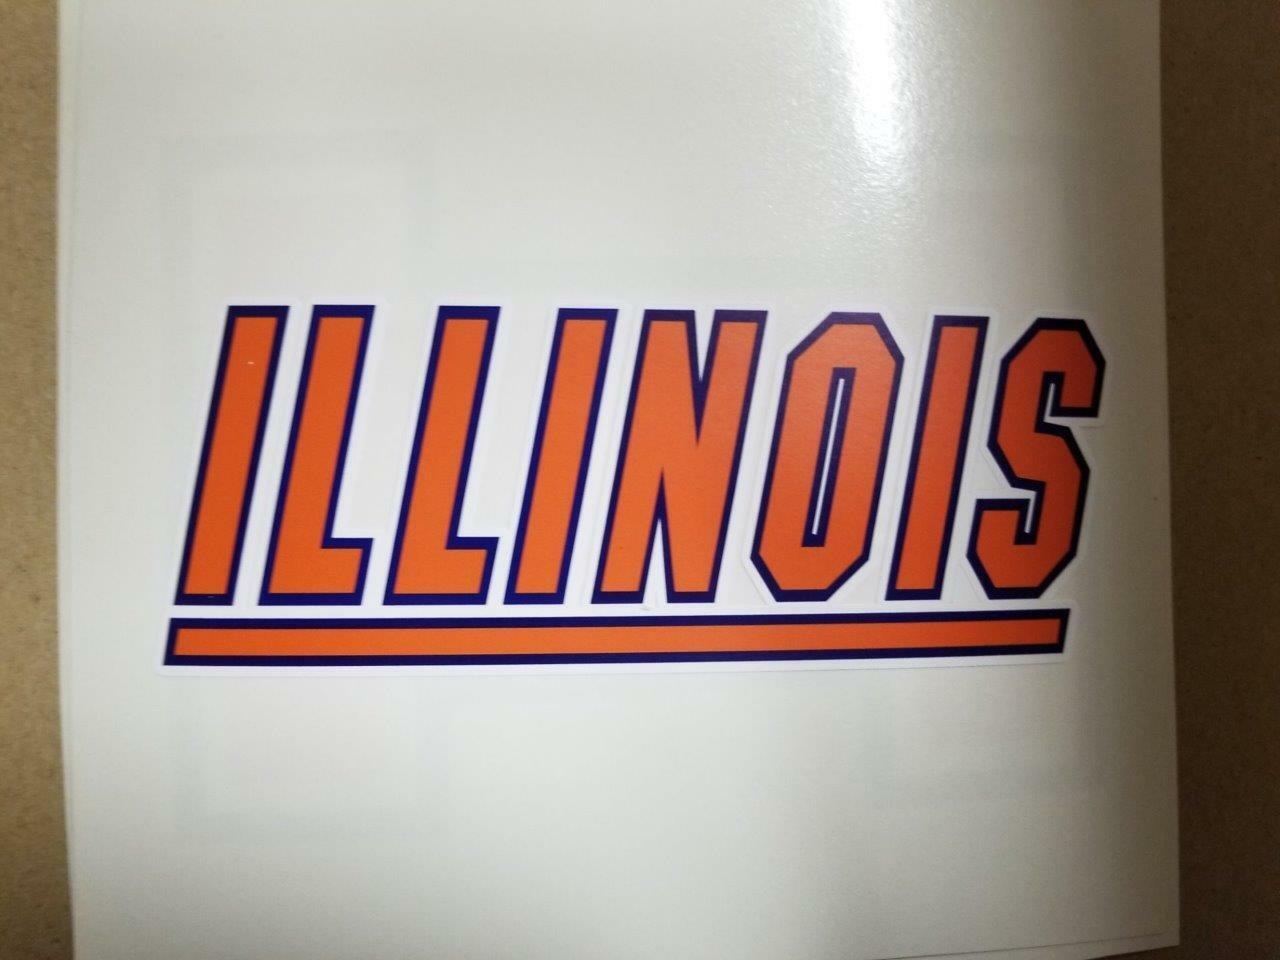 Illinois Fighting Illini cornhole board or  vehicle decal(s)FI3  brand on sale clearance